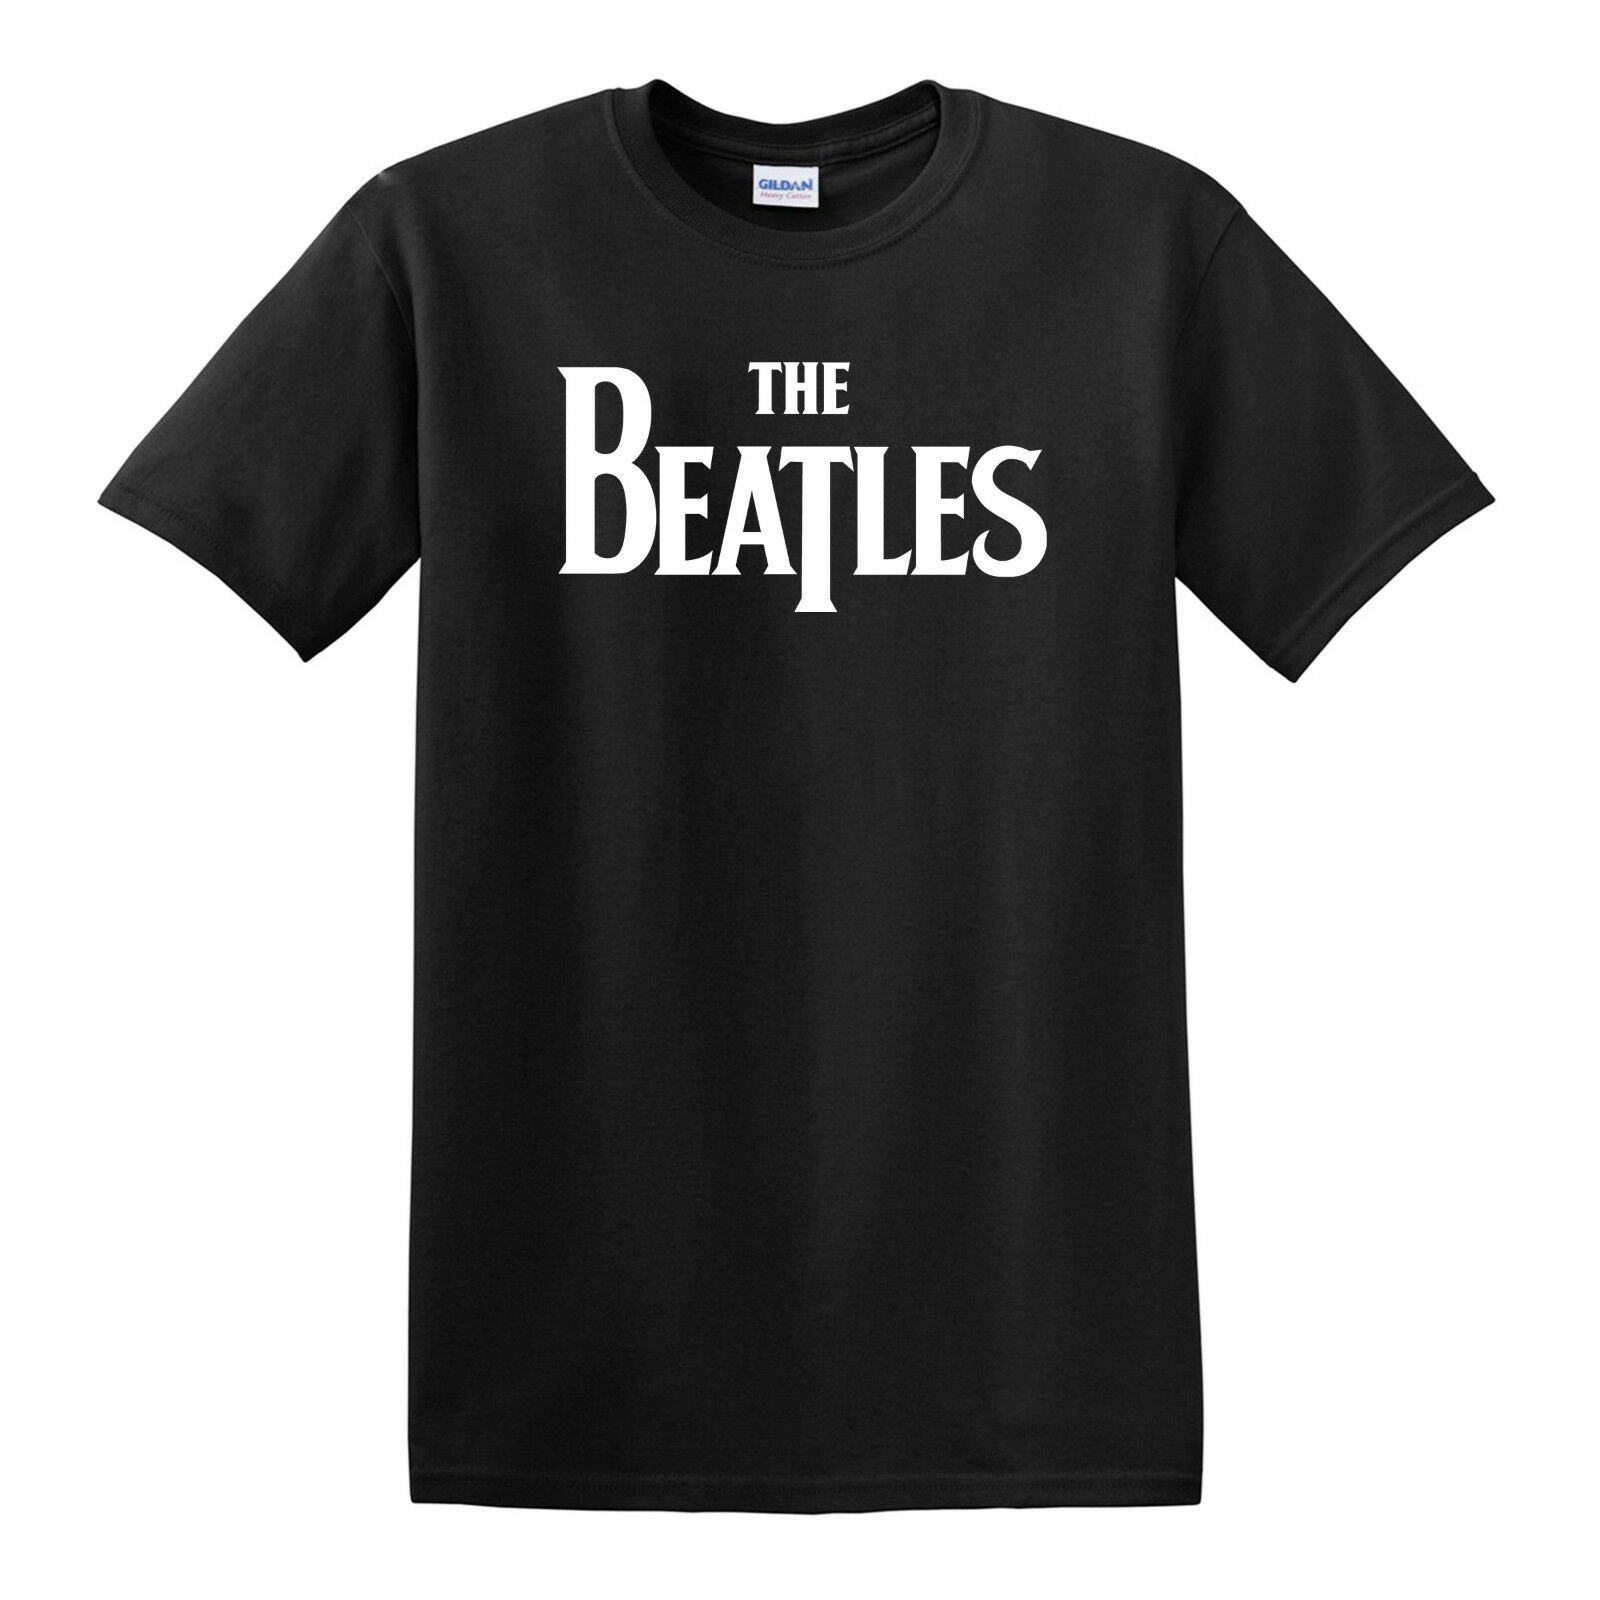 The Beatles T-SHIRT - S to 6XL - Classic Rock Band